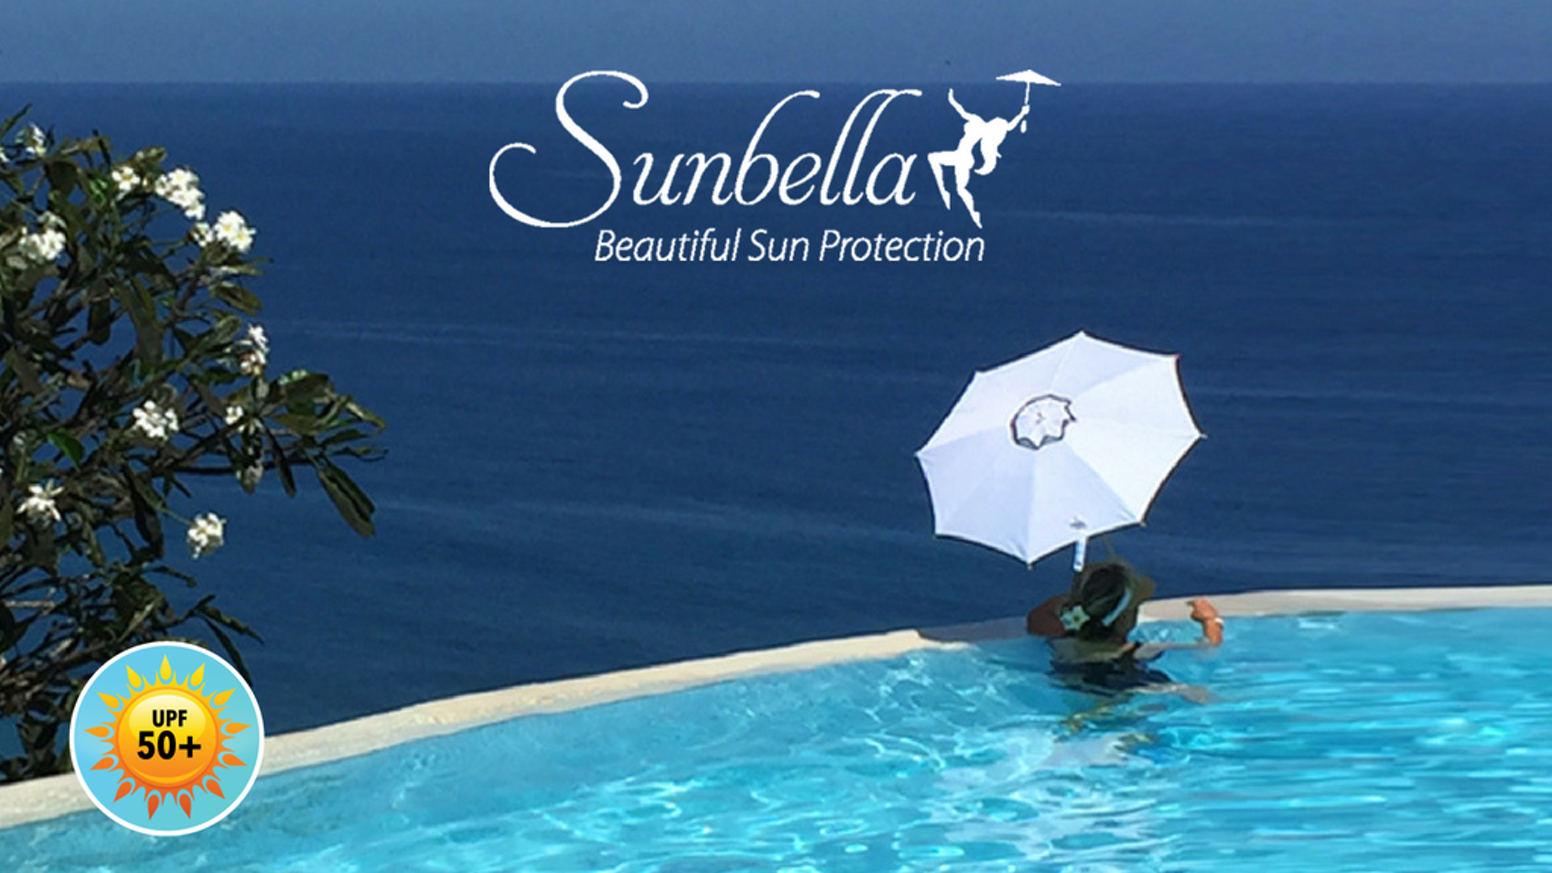 Sunbella S Folding Uv Sun Umbrella Upf50 By Jillian Intini